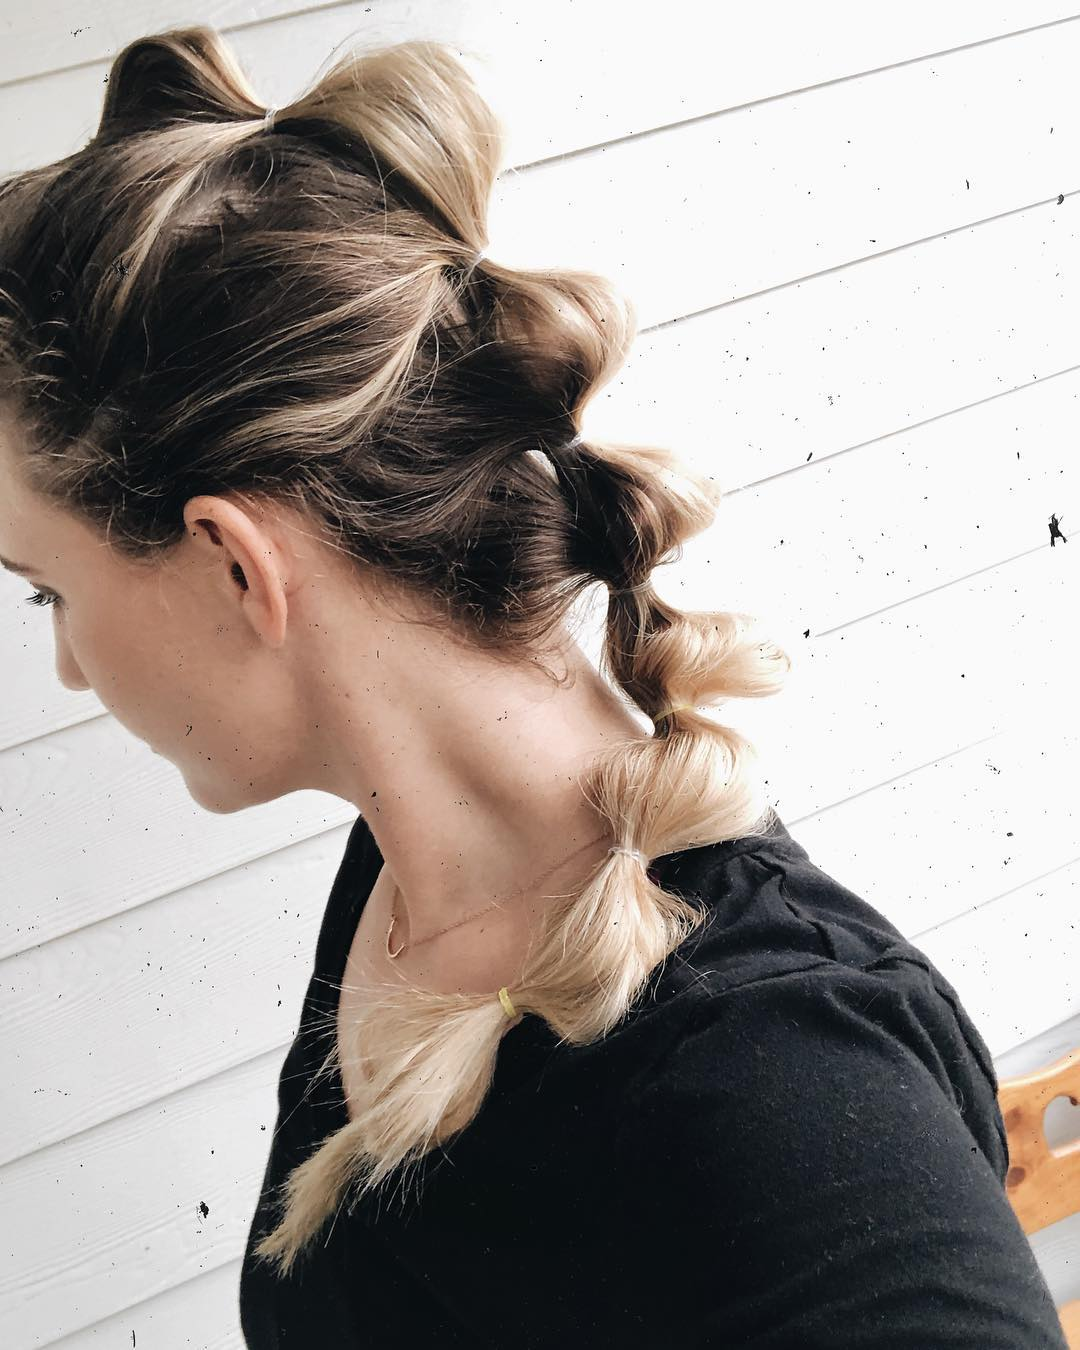 Get Inspired by These Long Braided Hairstyles